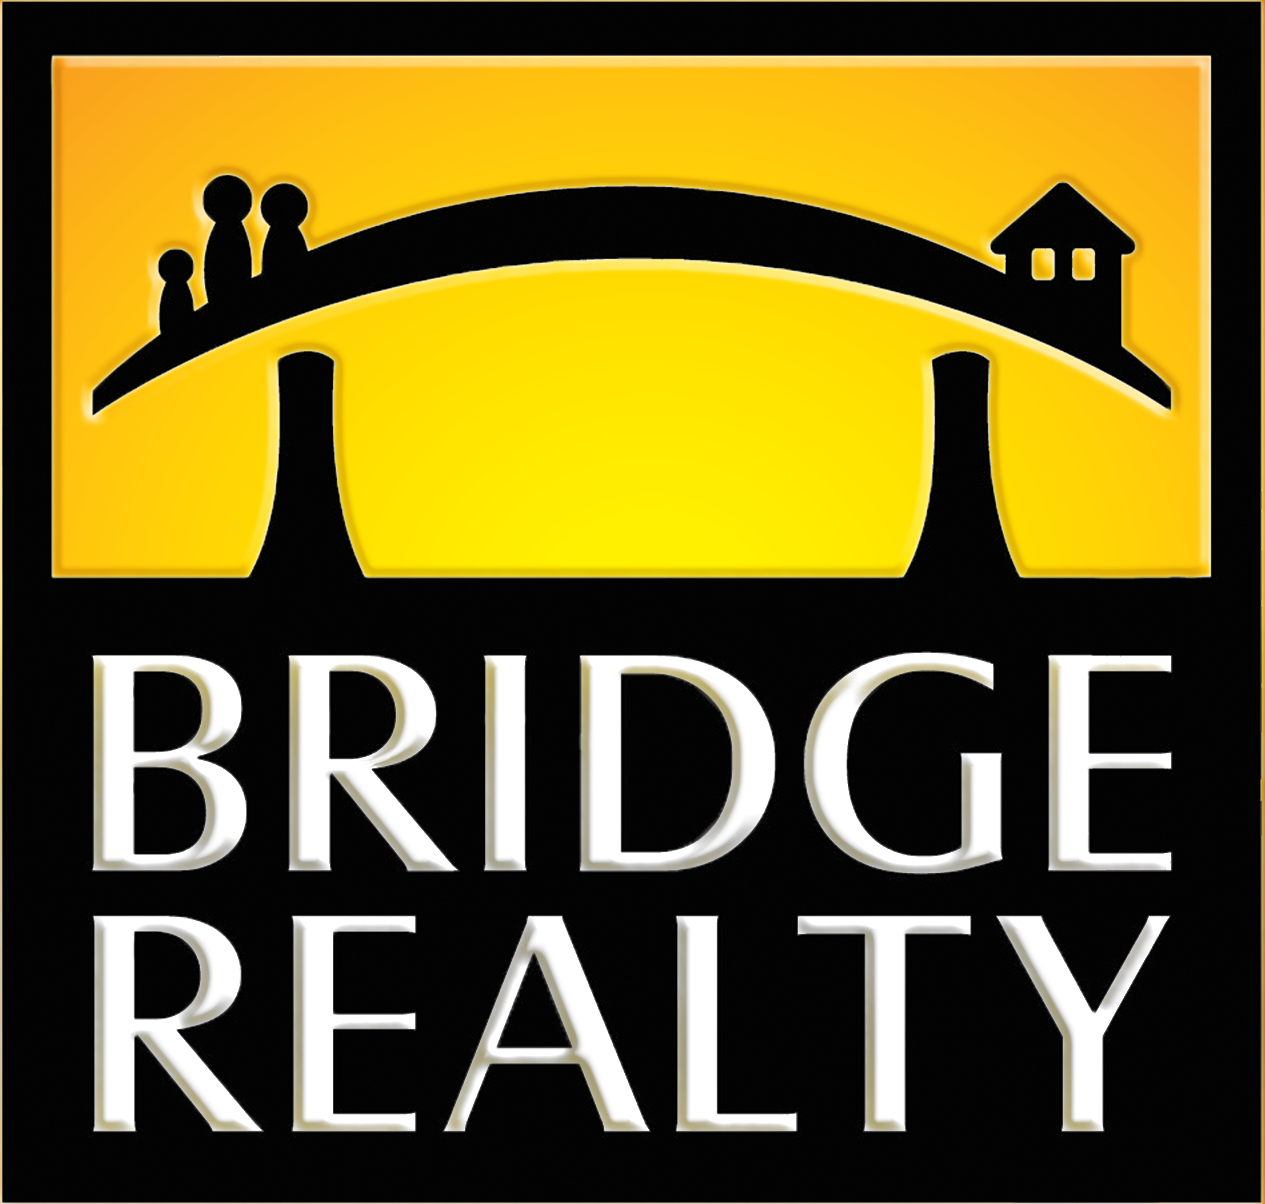 Bridge Realty